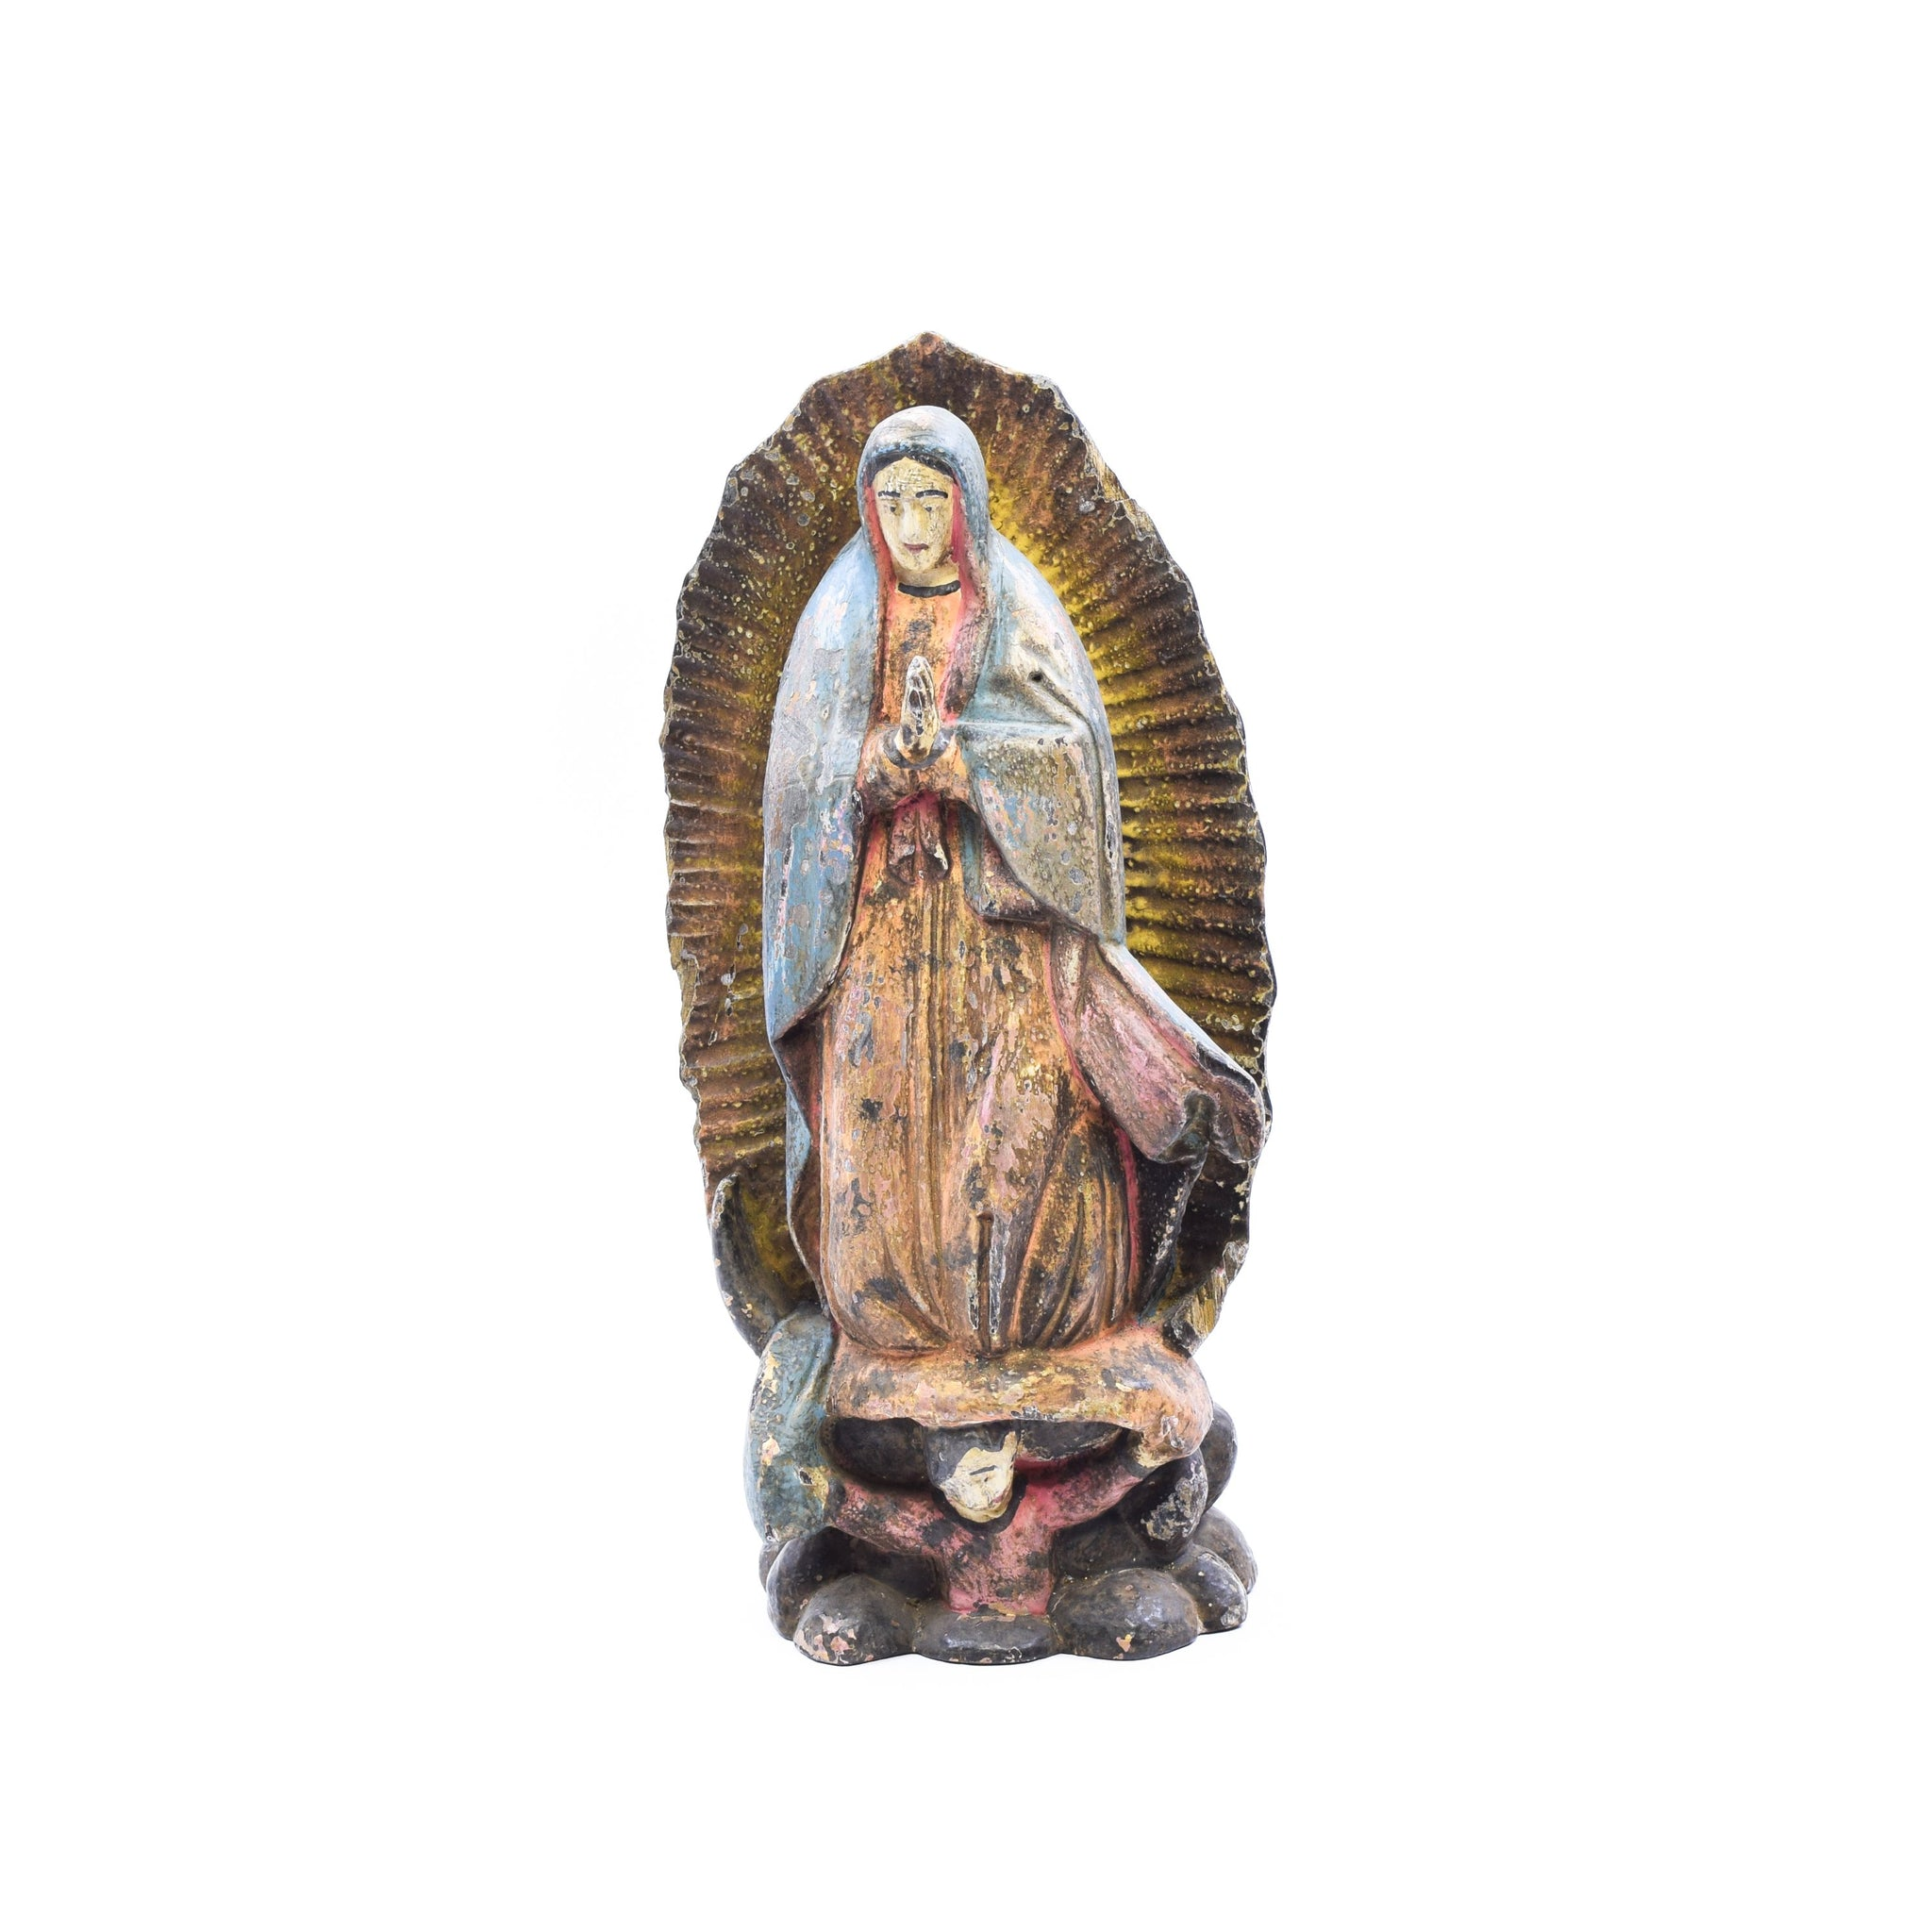 Lady of Guadalupe carvings, lady of guadalupe, religious